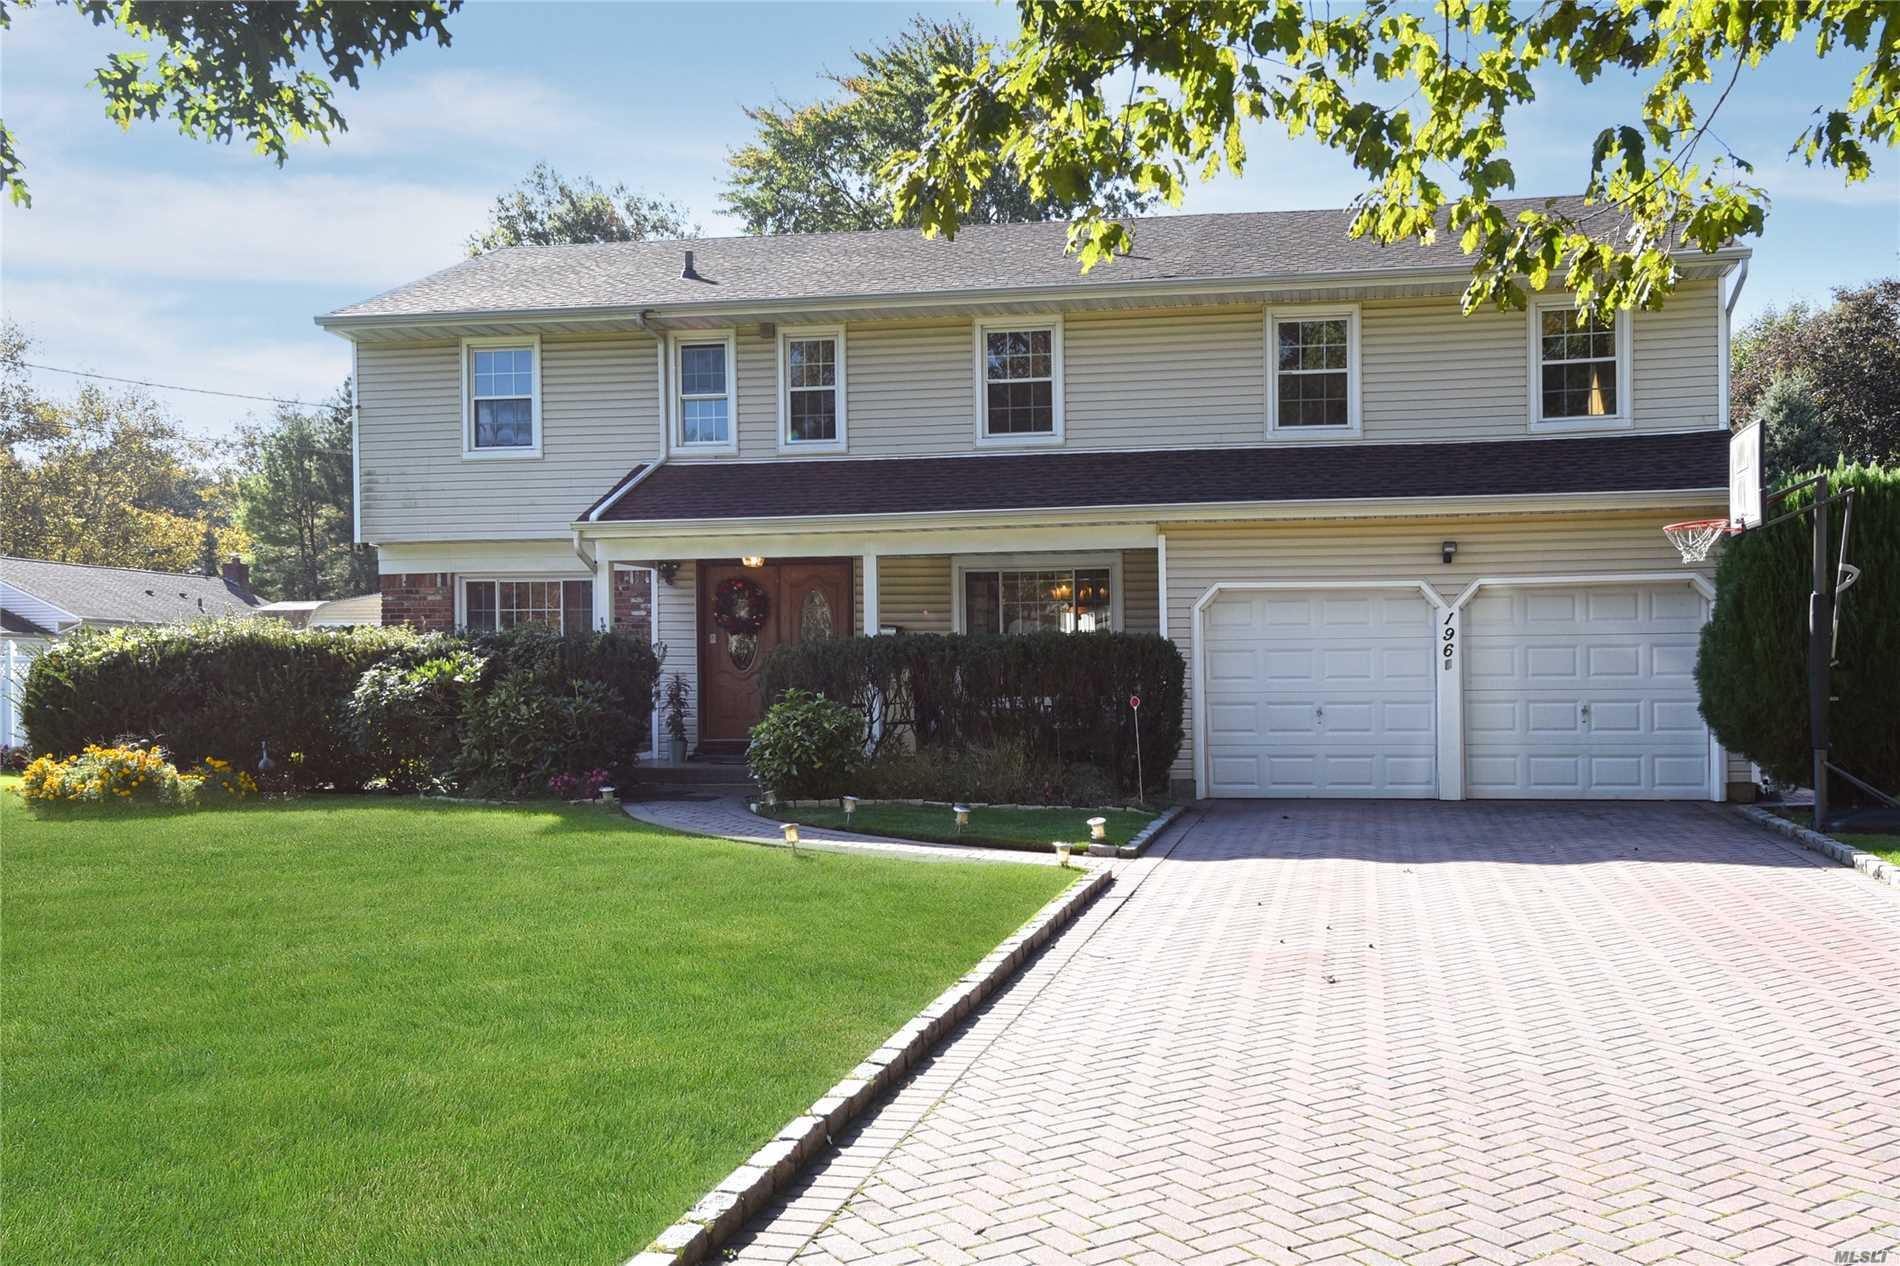 Photo of home for sale at 196 Syosset Woodbury Rd, Syosset NY